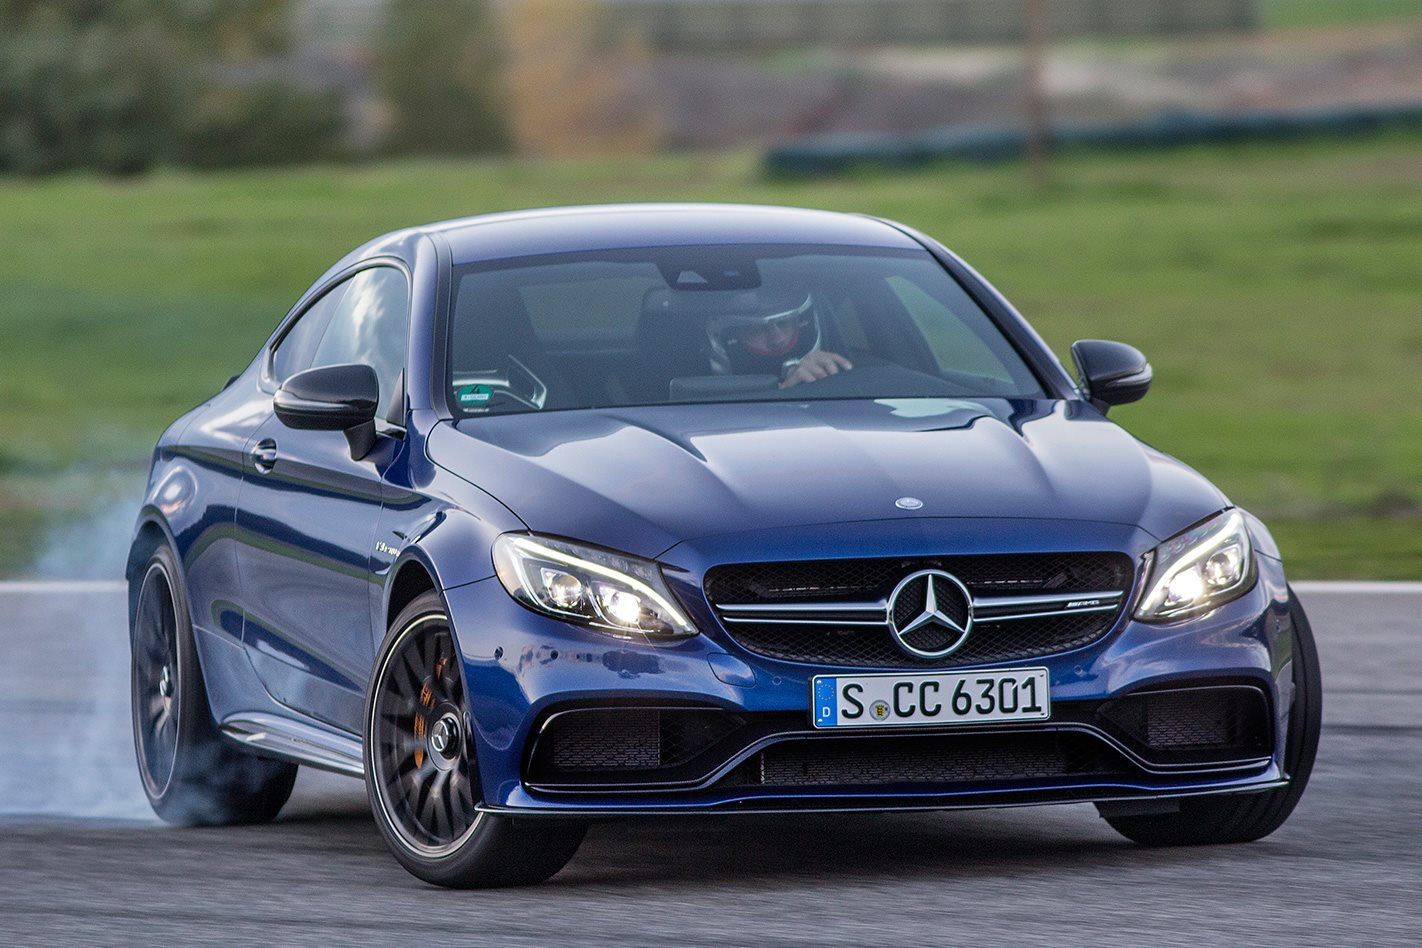 2016 mercedes amg c63 s coupe review wheels. Black Bedroom Furniture Sets. Home Design Ideas